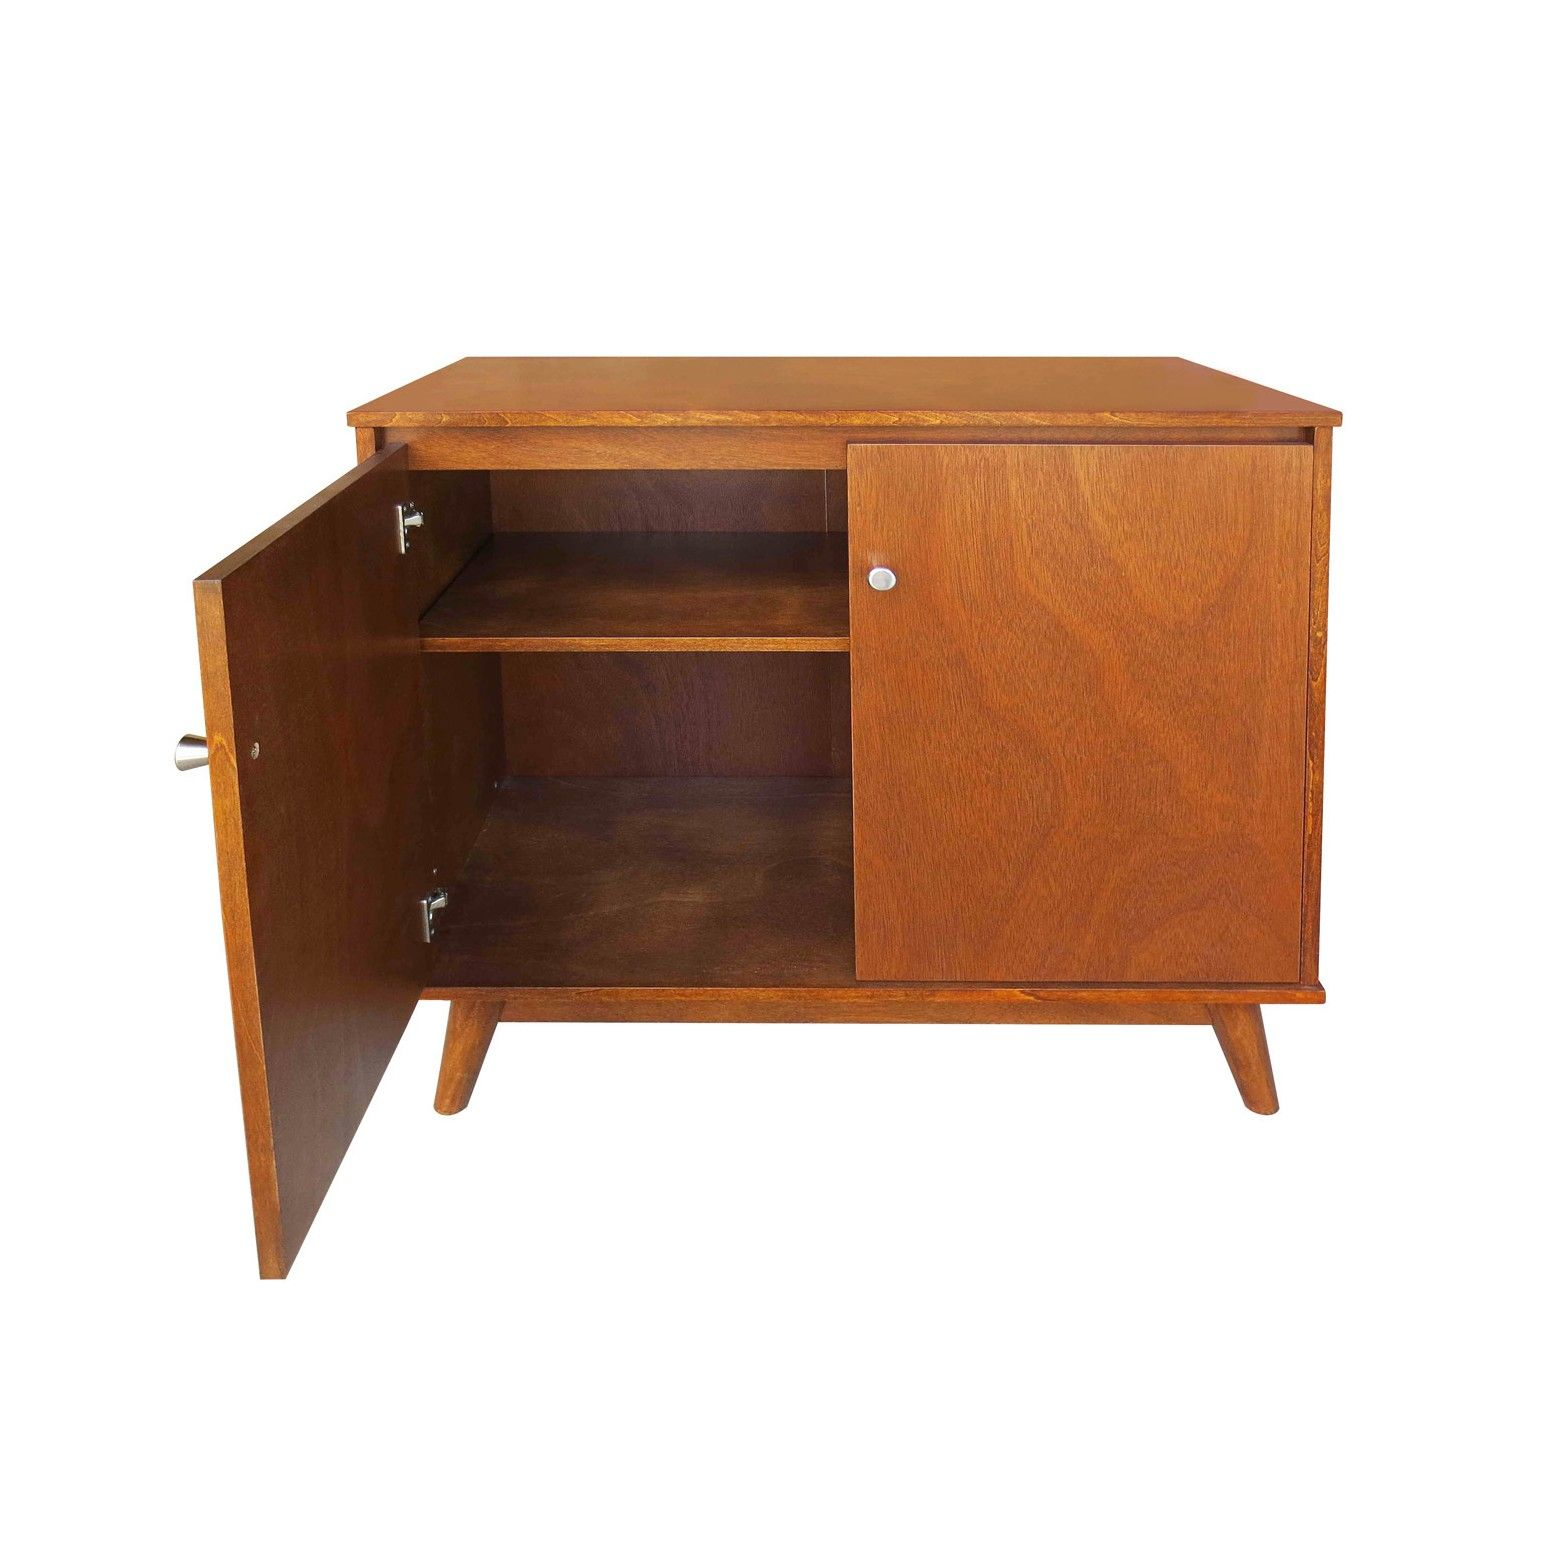 ca7a5686ef7 The Amherst Mid-Century Modern Storage Cabinet from Project 62 amp  153   makes